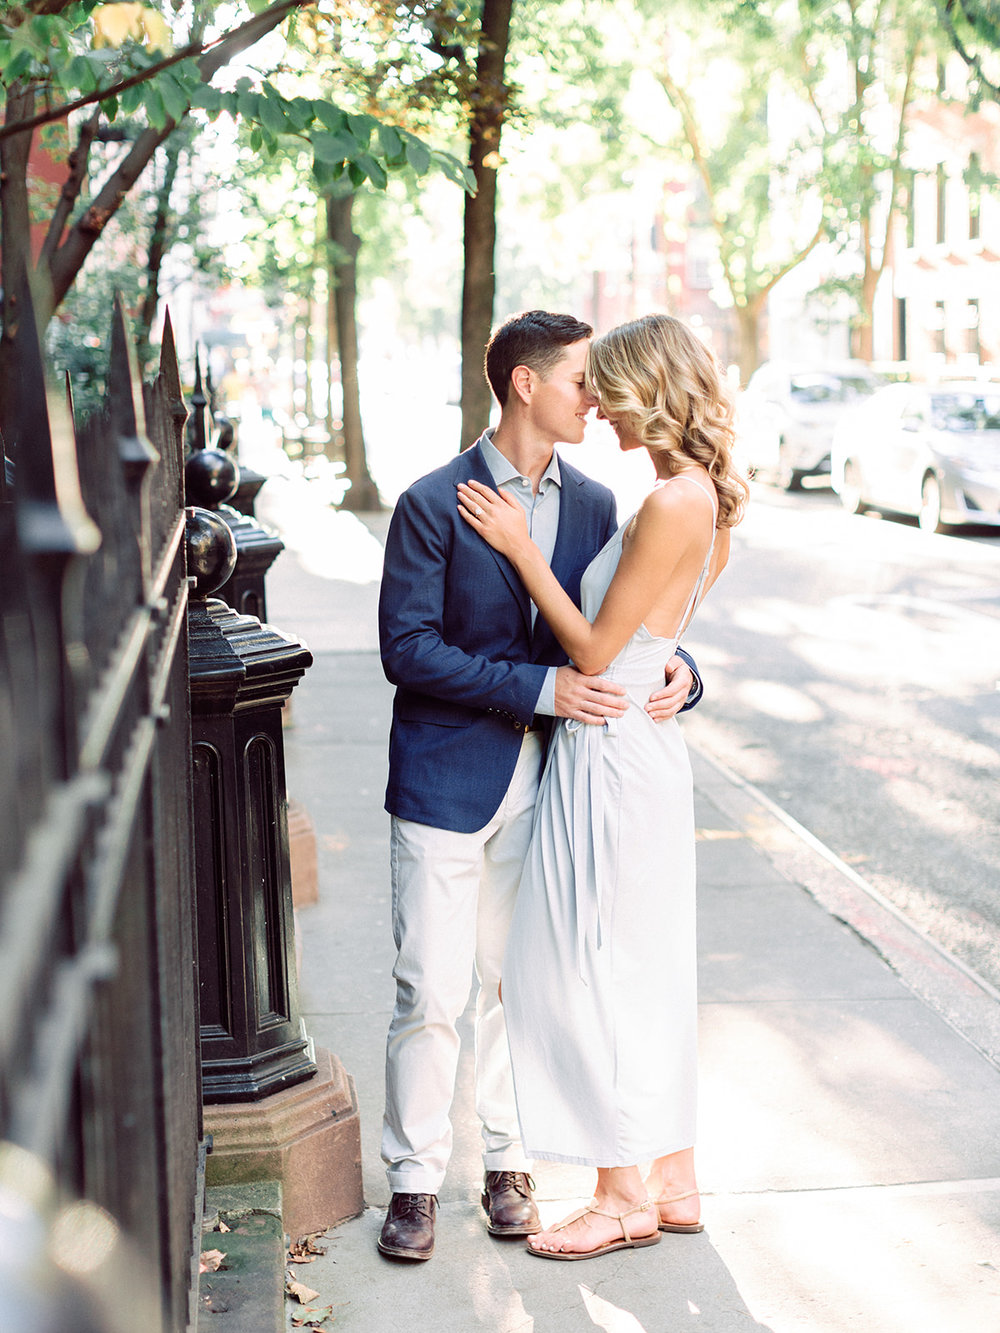 New York City Engagement Photos with Rachel May Photography-92317-83.jpg